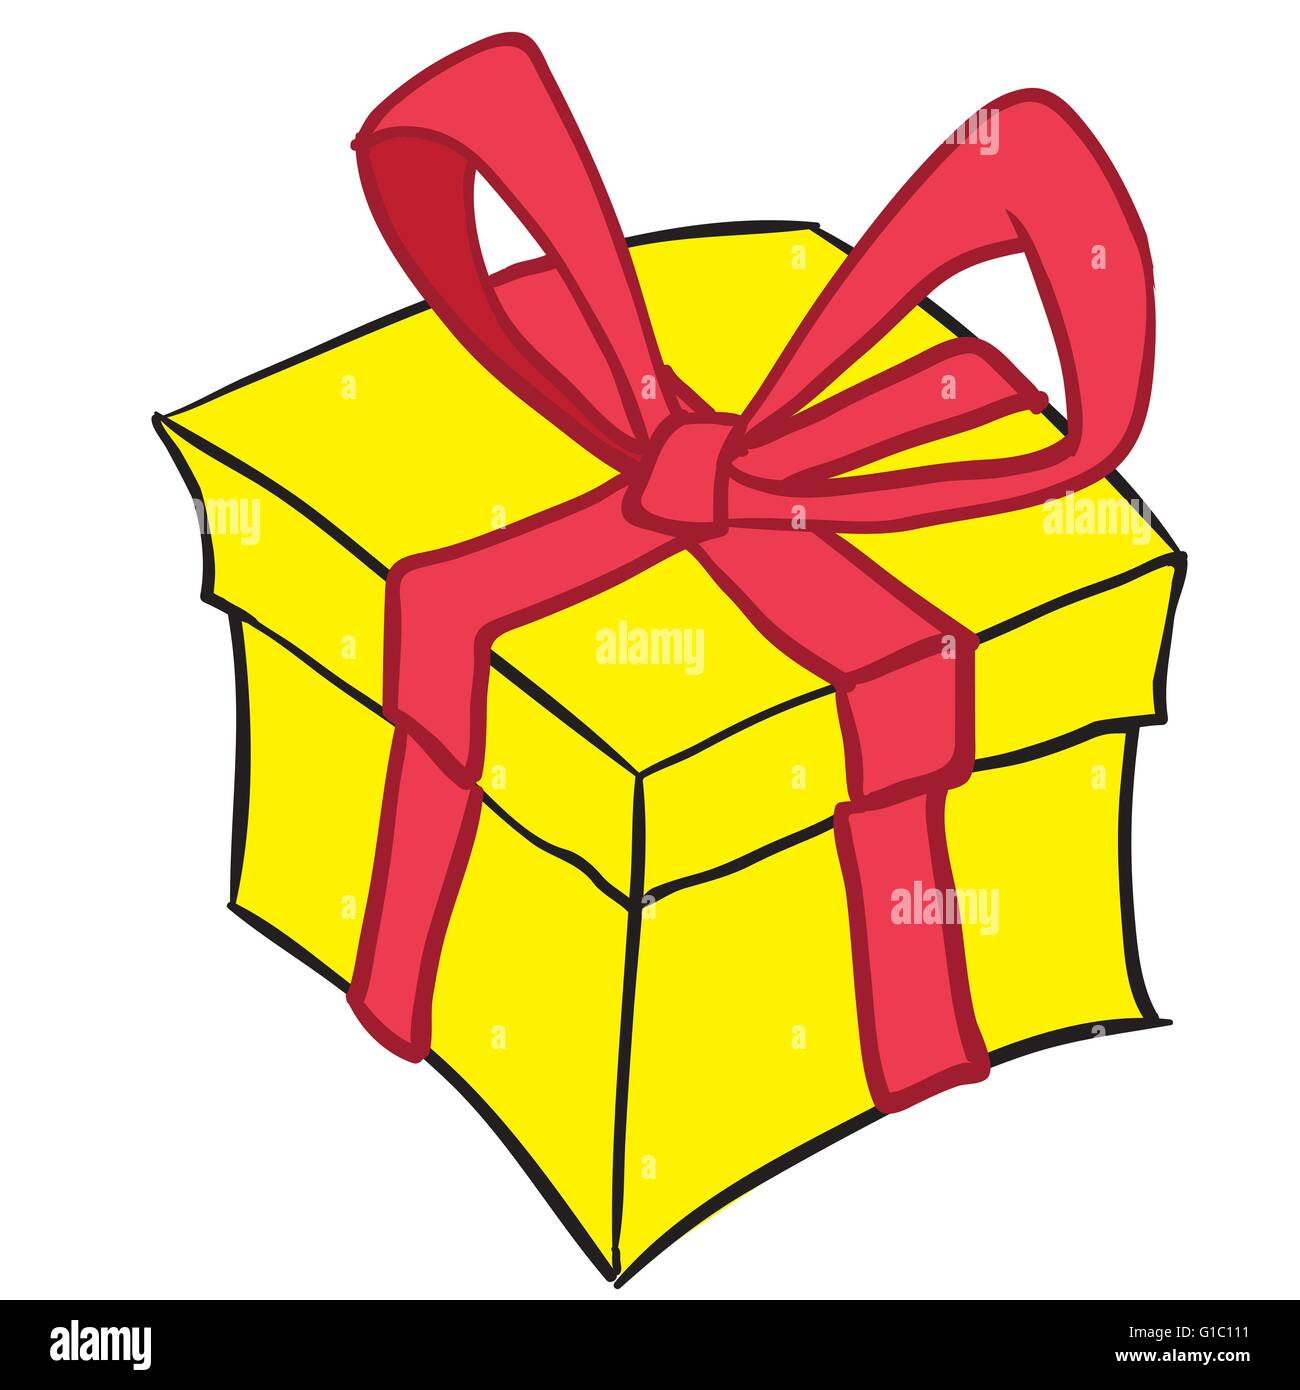 Yellow Gift Box With Red Ribbon Cartoon Doodle Stock Vector Image Art Alamy